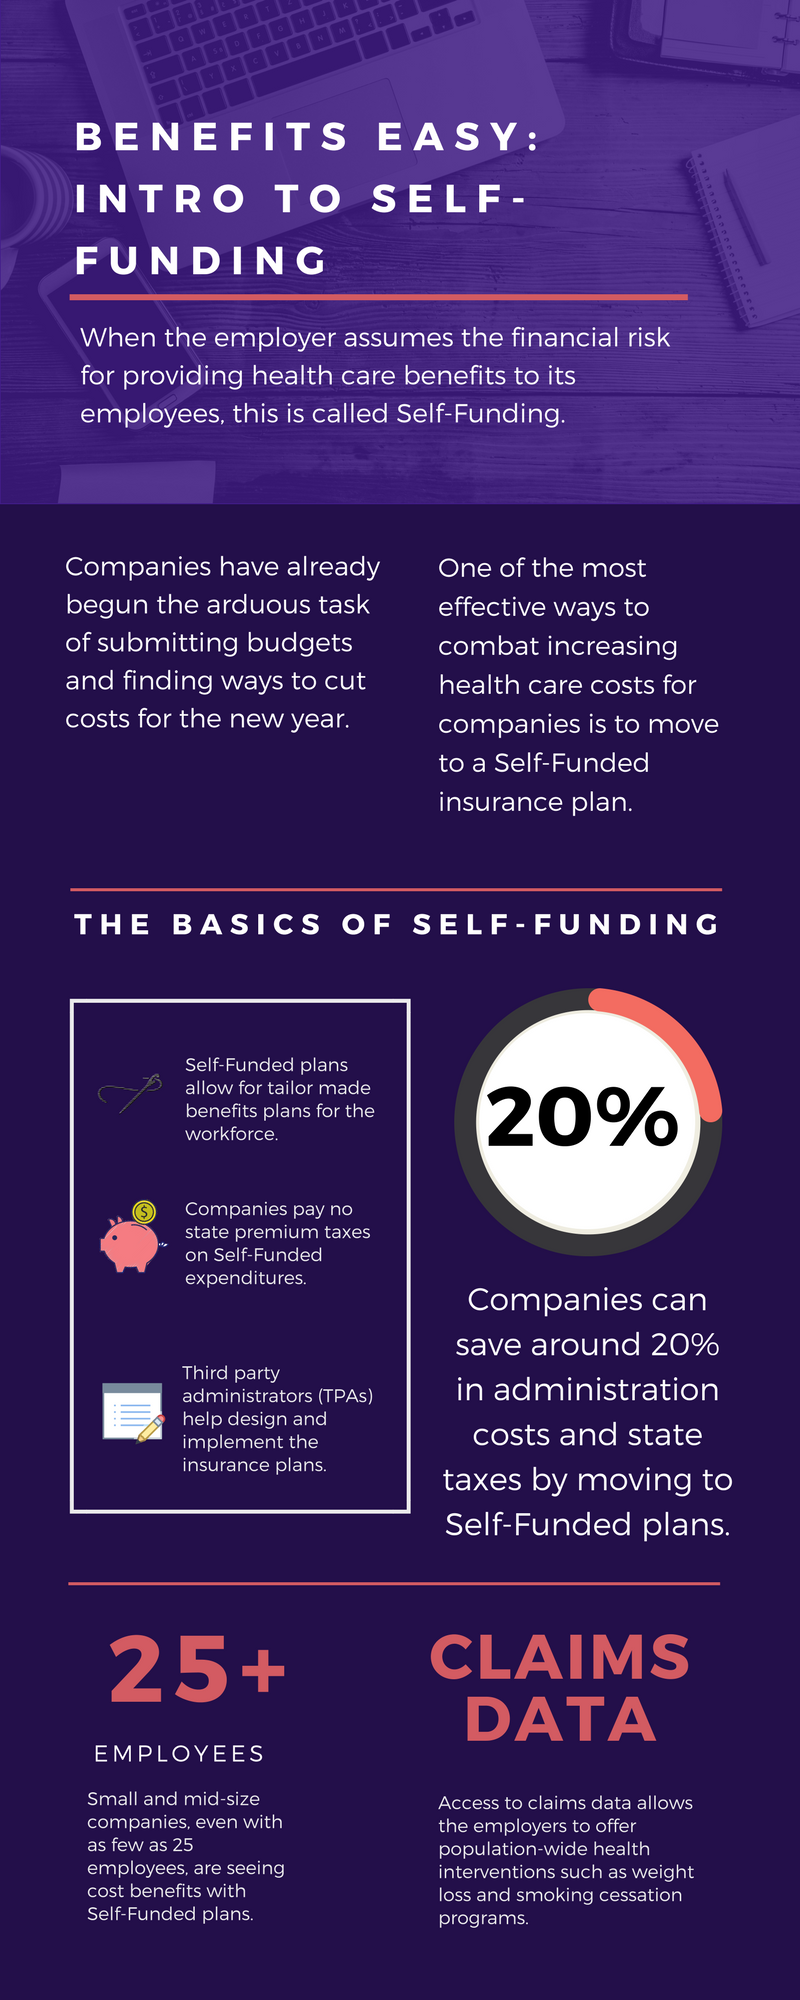 Benefits Easy: Intro to Self-Funding | Florida Employee Benefits